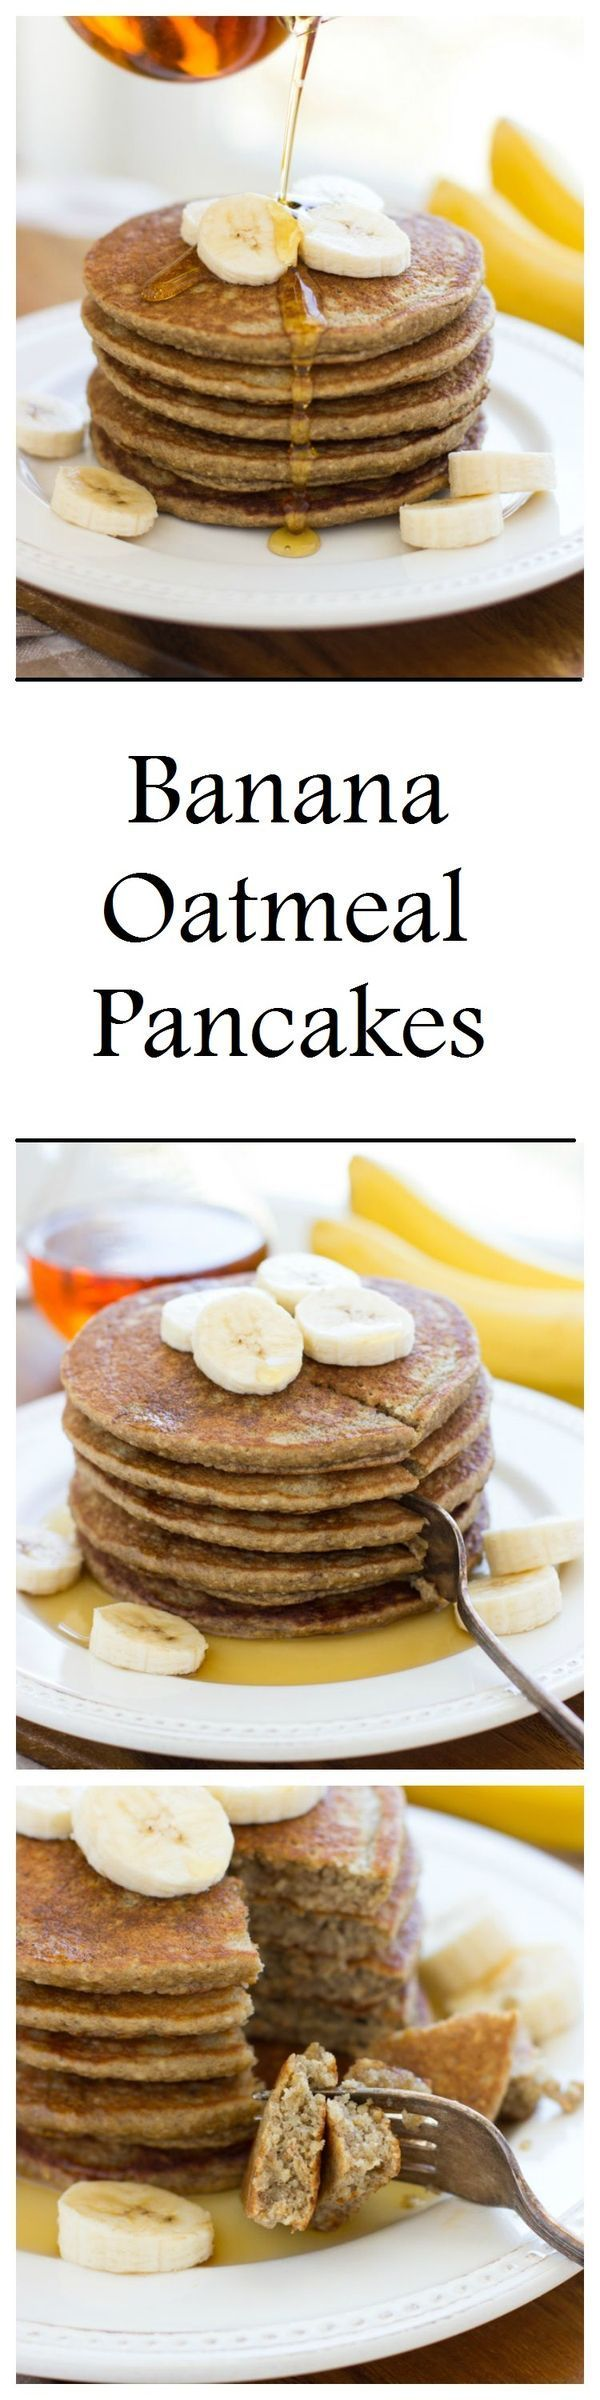 Banana Oatmeal Pancakes that are light, fluffy and refined sugar-free! They're made easy in a blender and are also gluten-free and dairy-free. Super easy recipe! Serve with maple syrup..Yum!